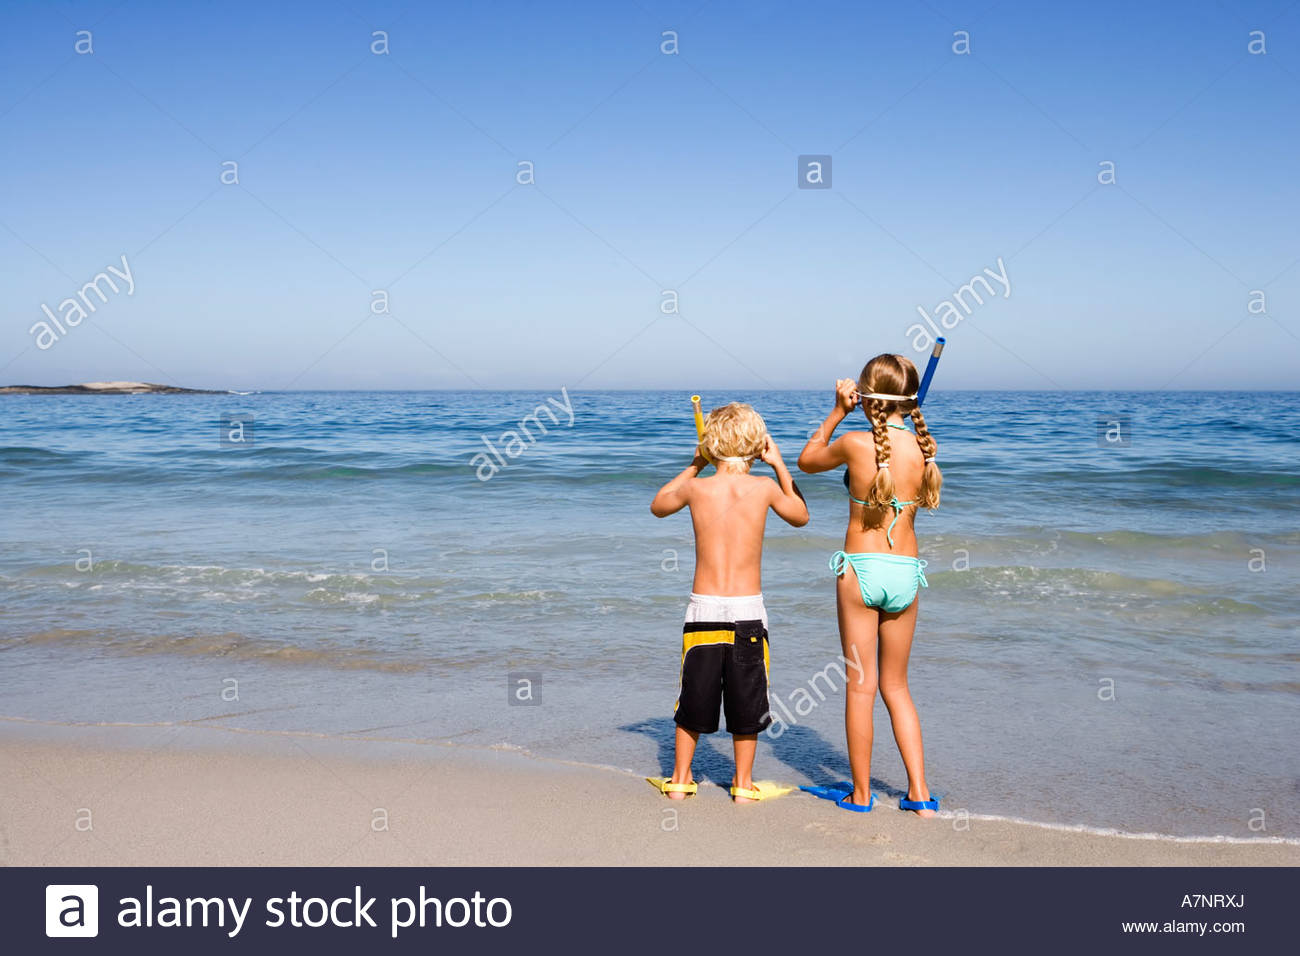 Boy 4 6 and girl 5 7 standing side by side on sandy beach at water s edge wearing snorkels rear view - Stock Image